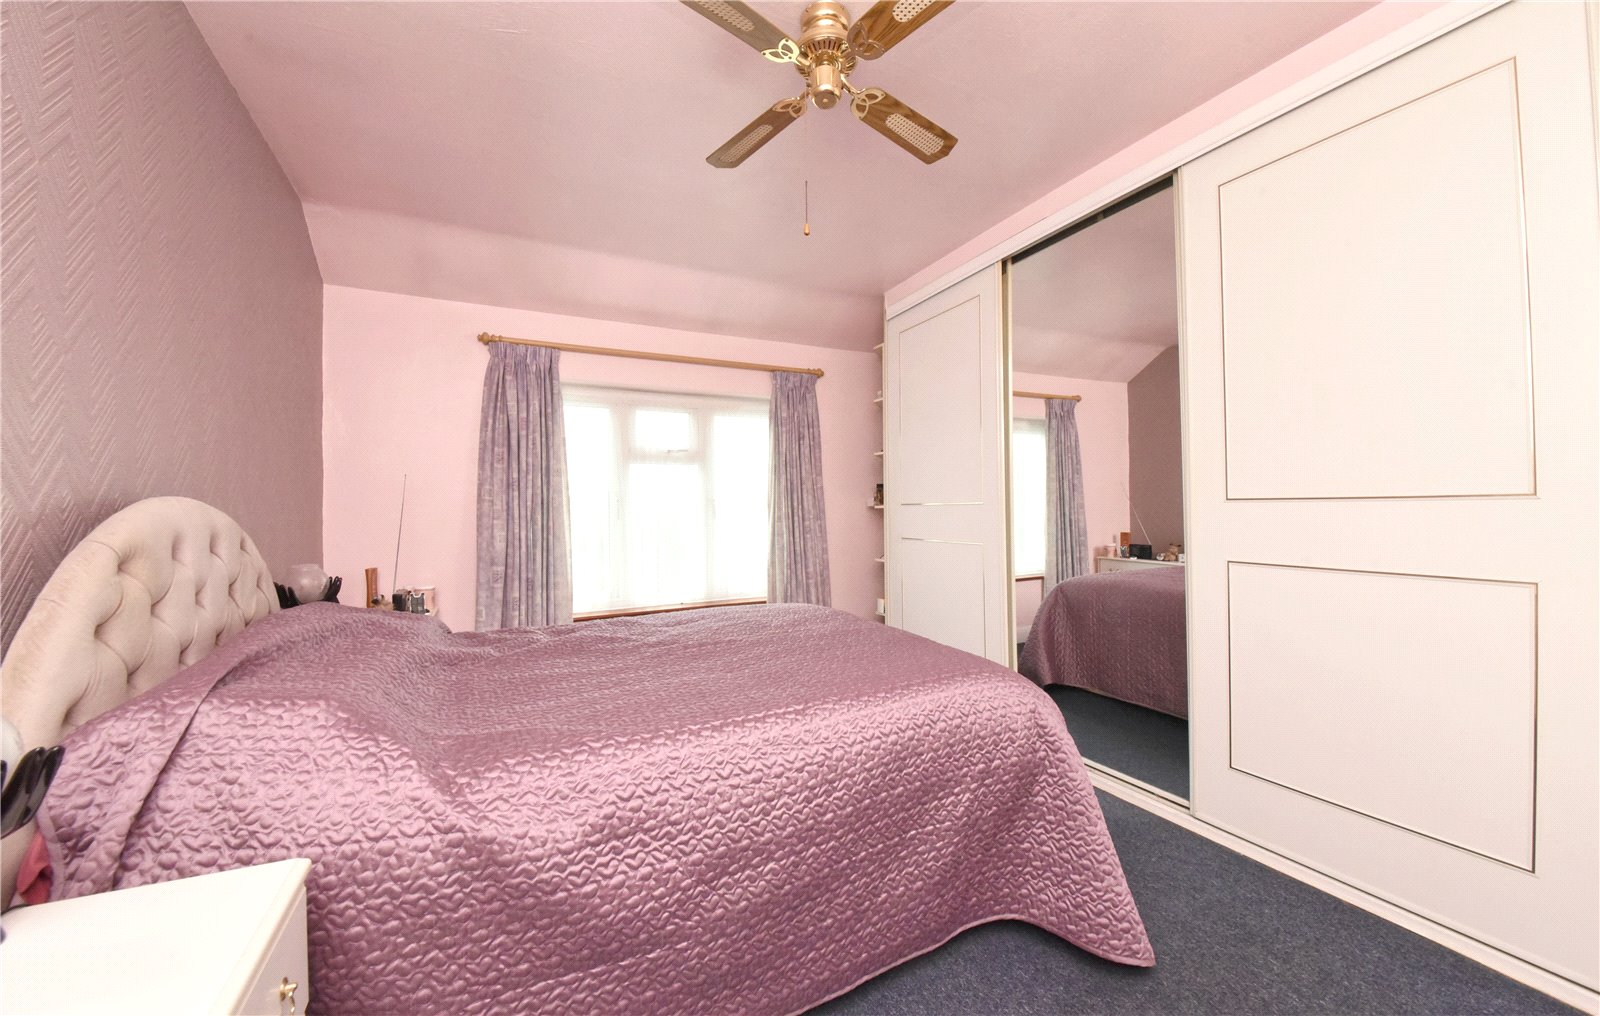 3 bed house for sale in Whetstone, N20 0DG  - Property Image 7